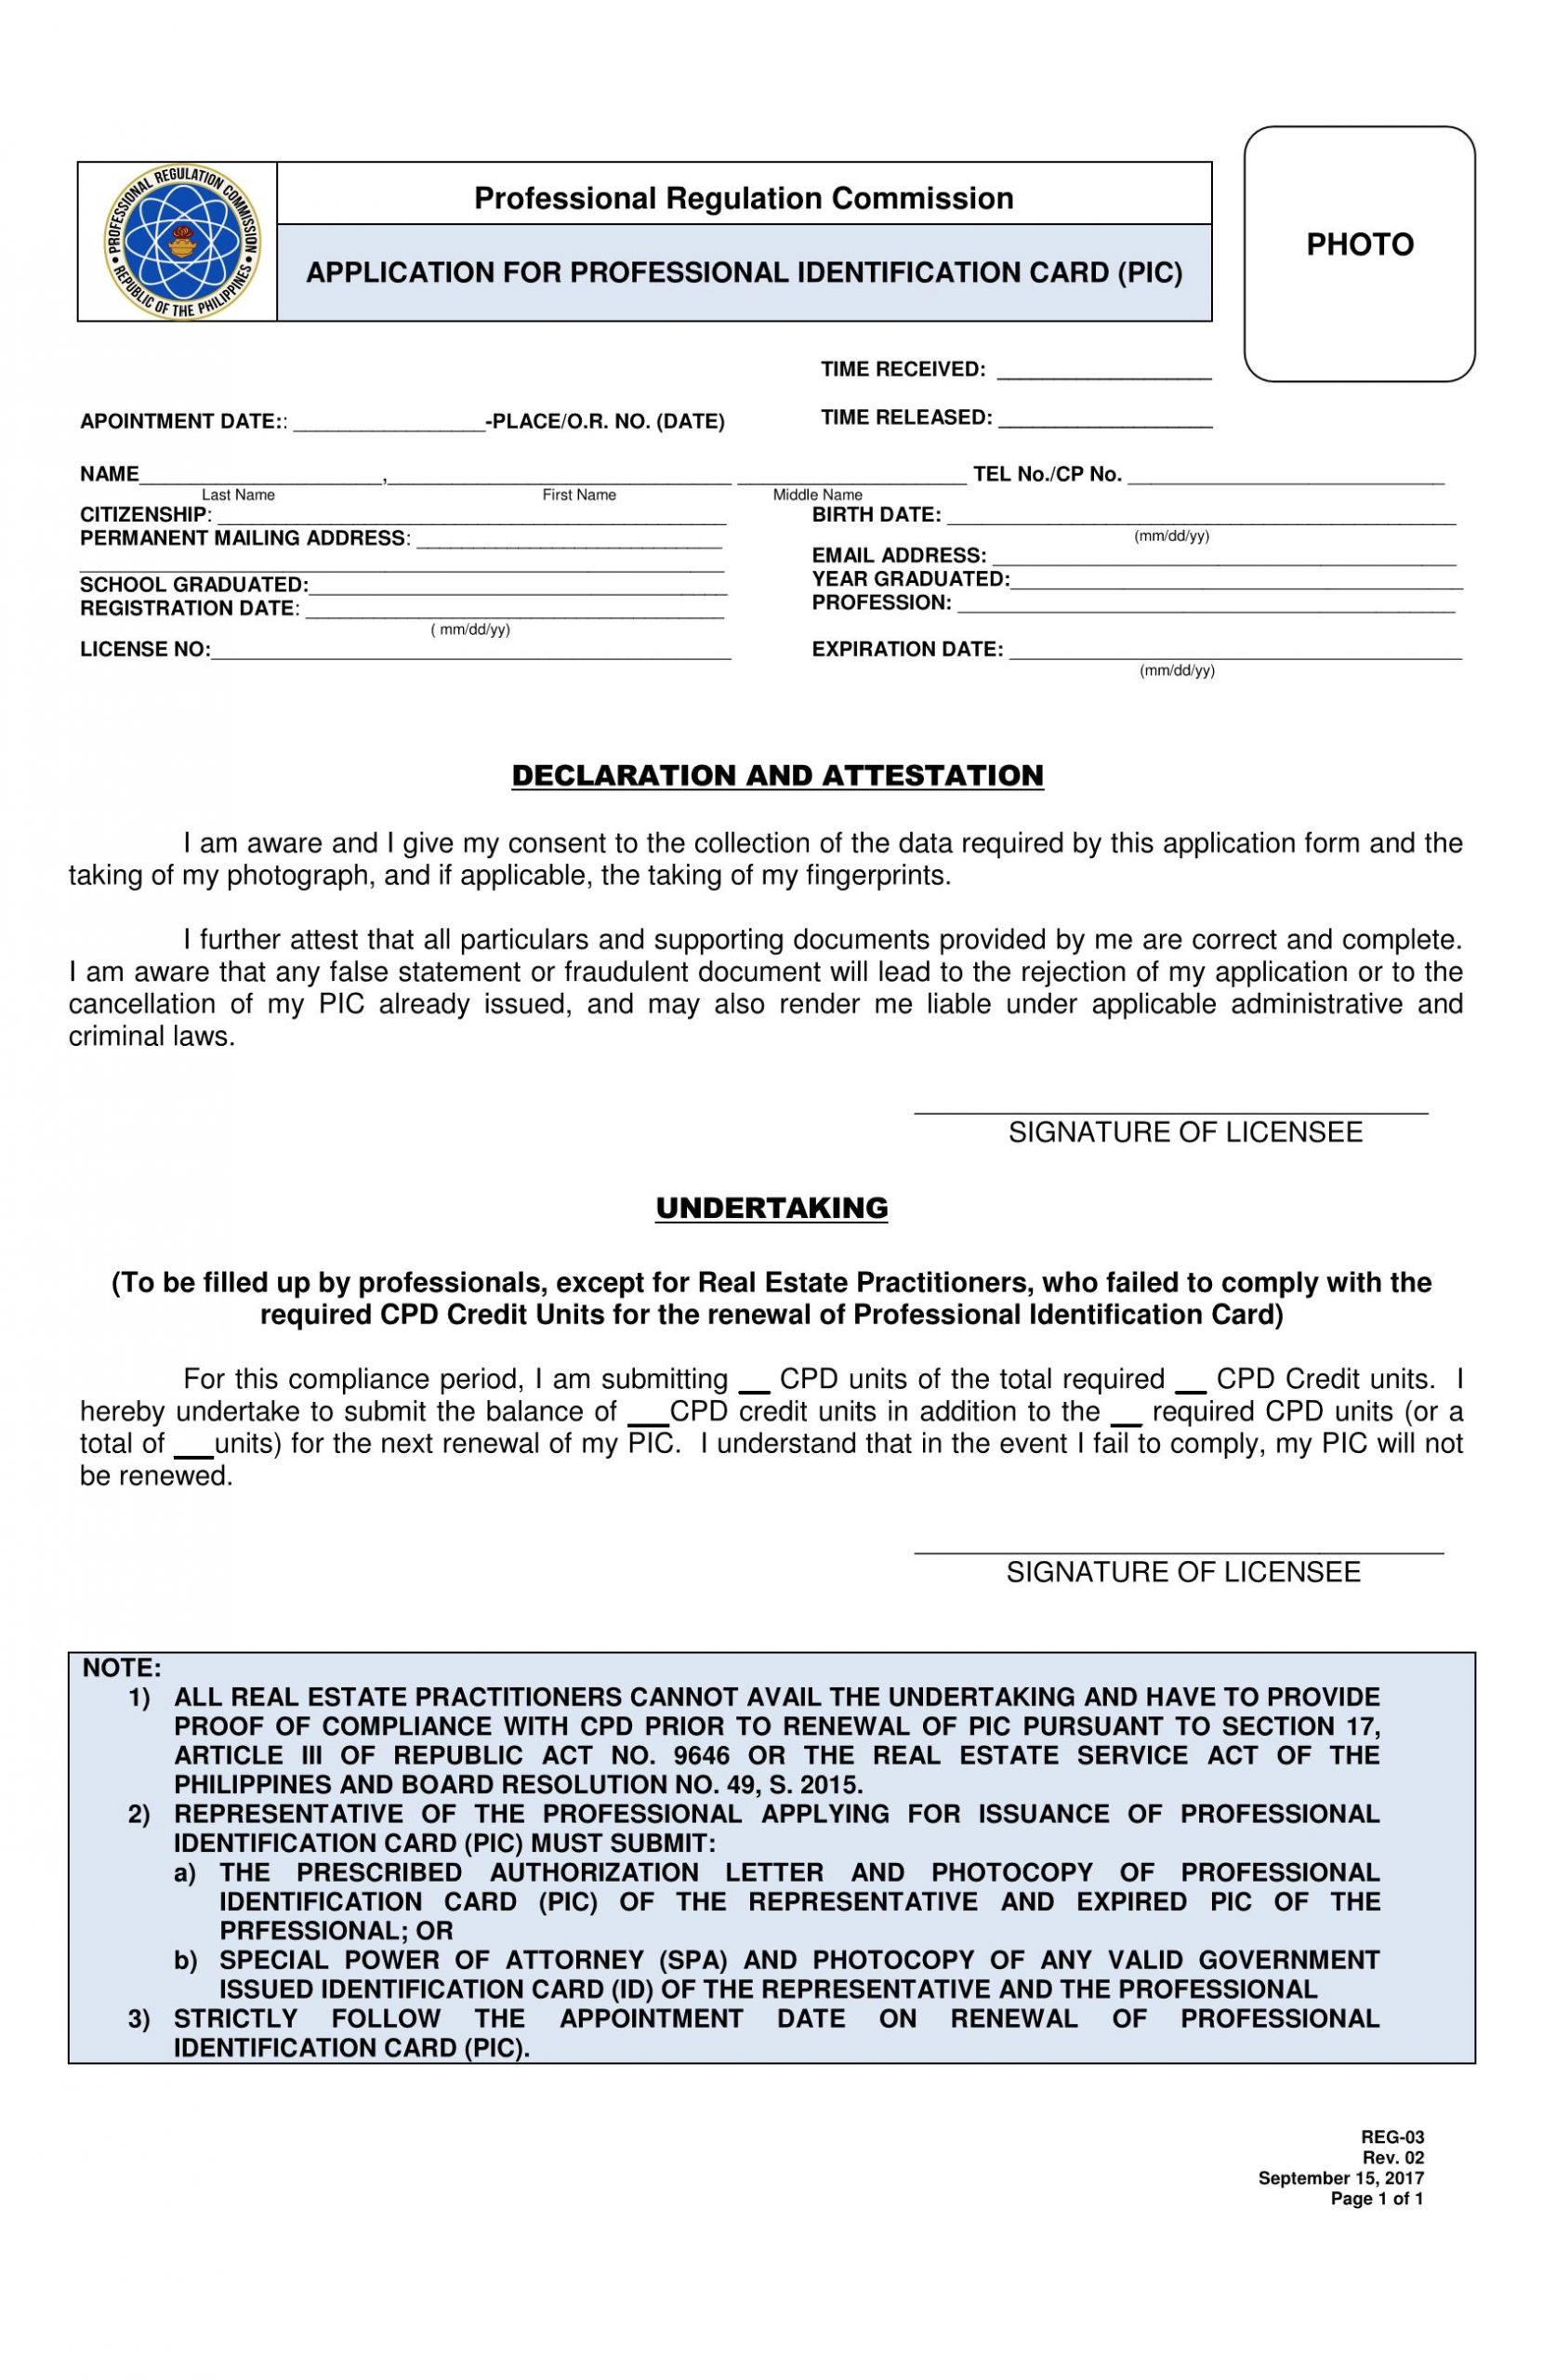 Prc Application for Professional Identification Card forms Professional Regulation Commission